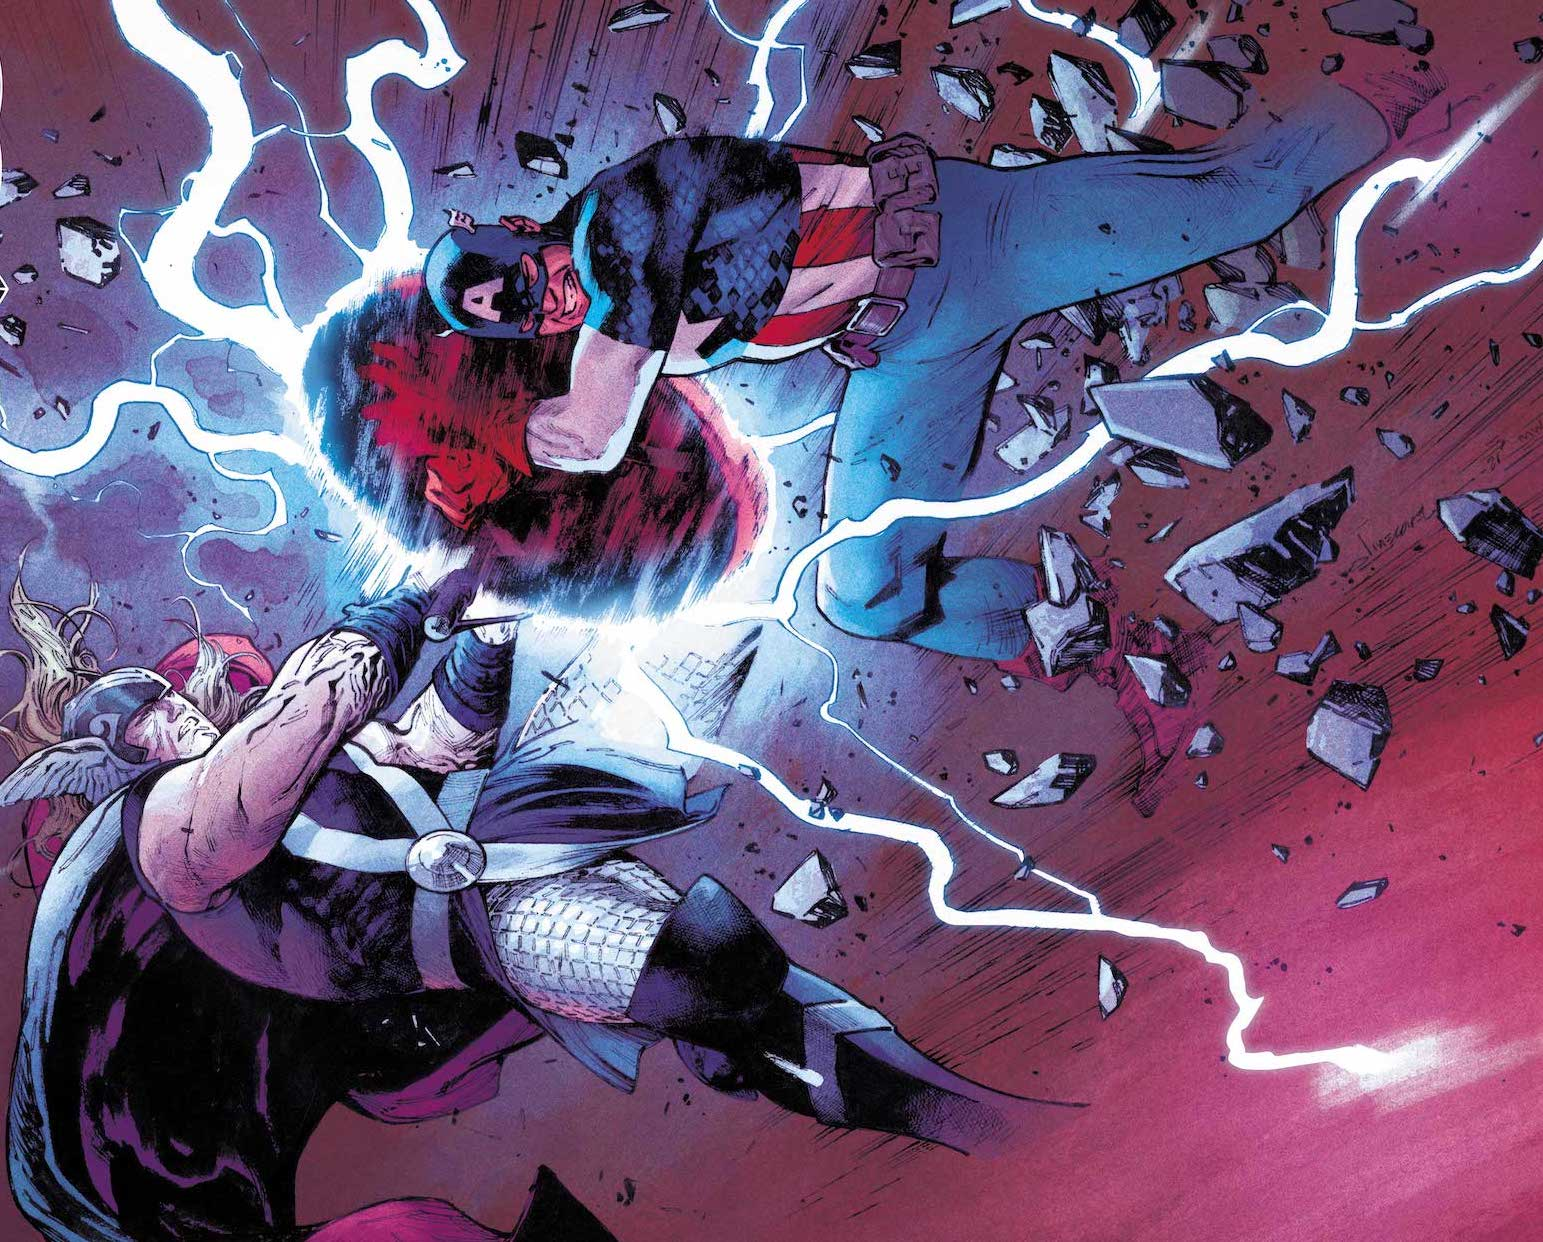 'Thor' #15 adds to the Thor mythos in new ways